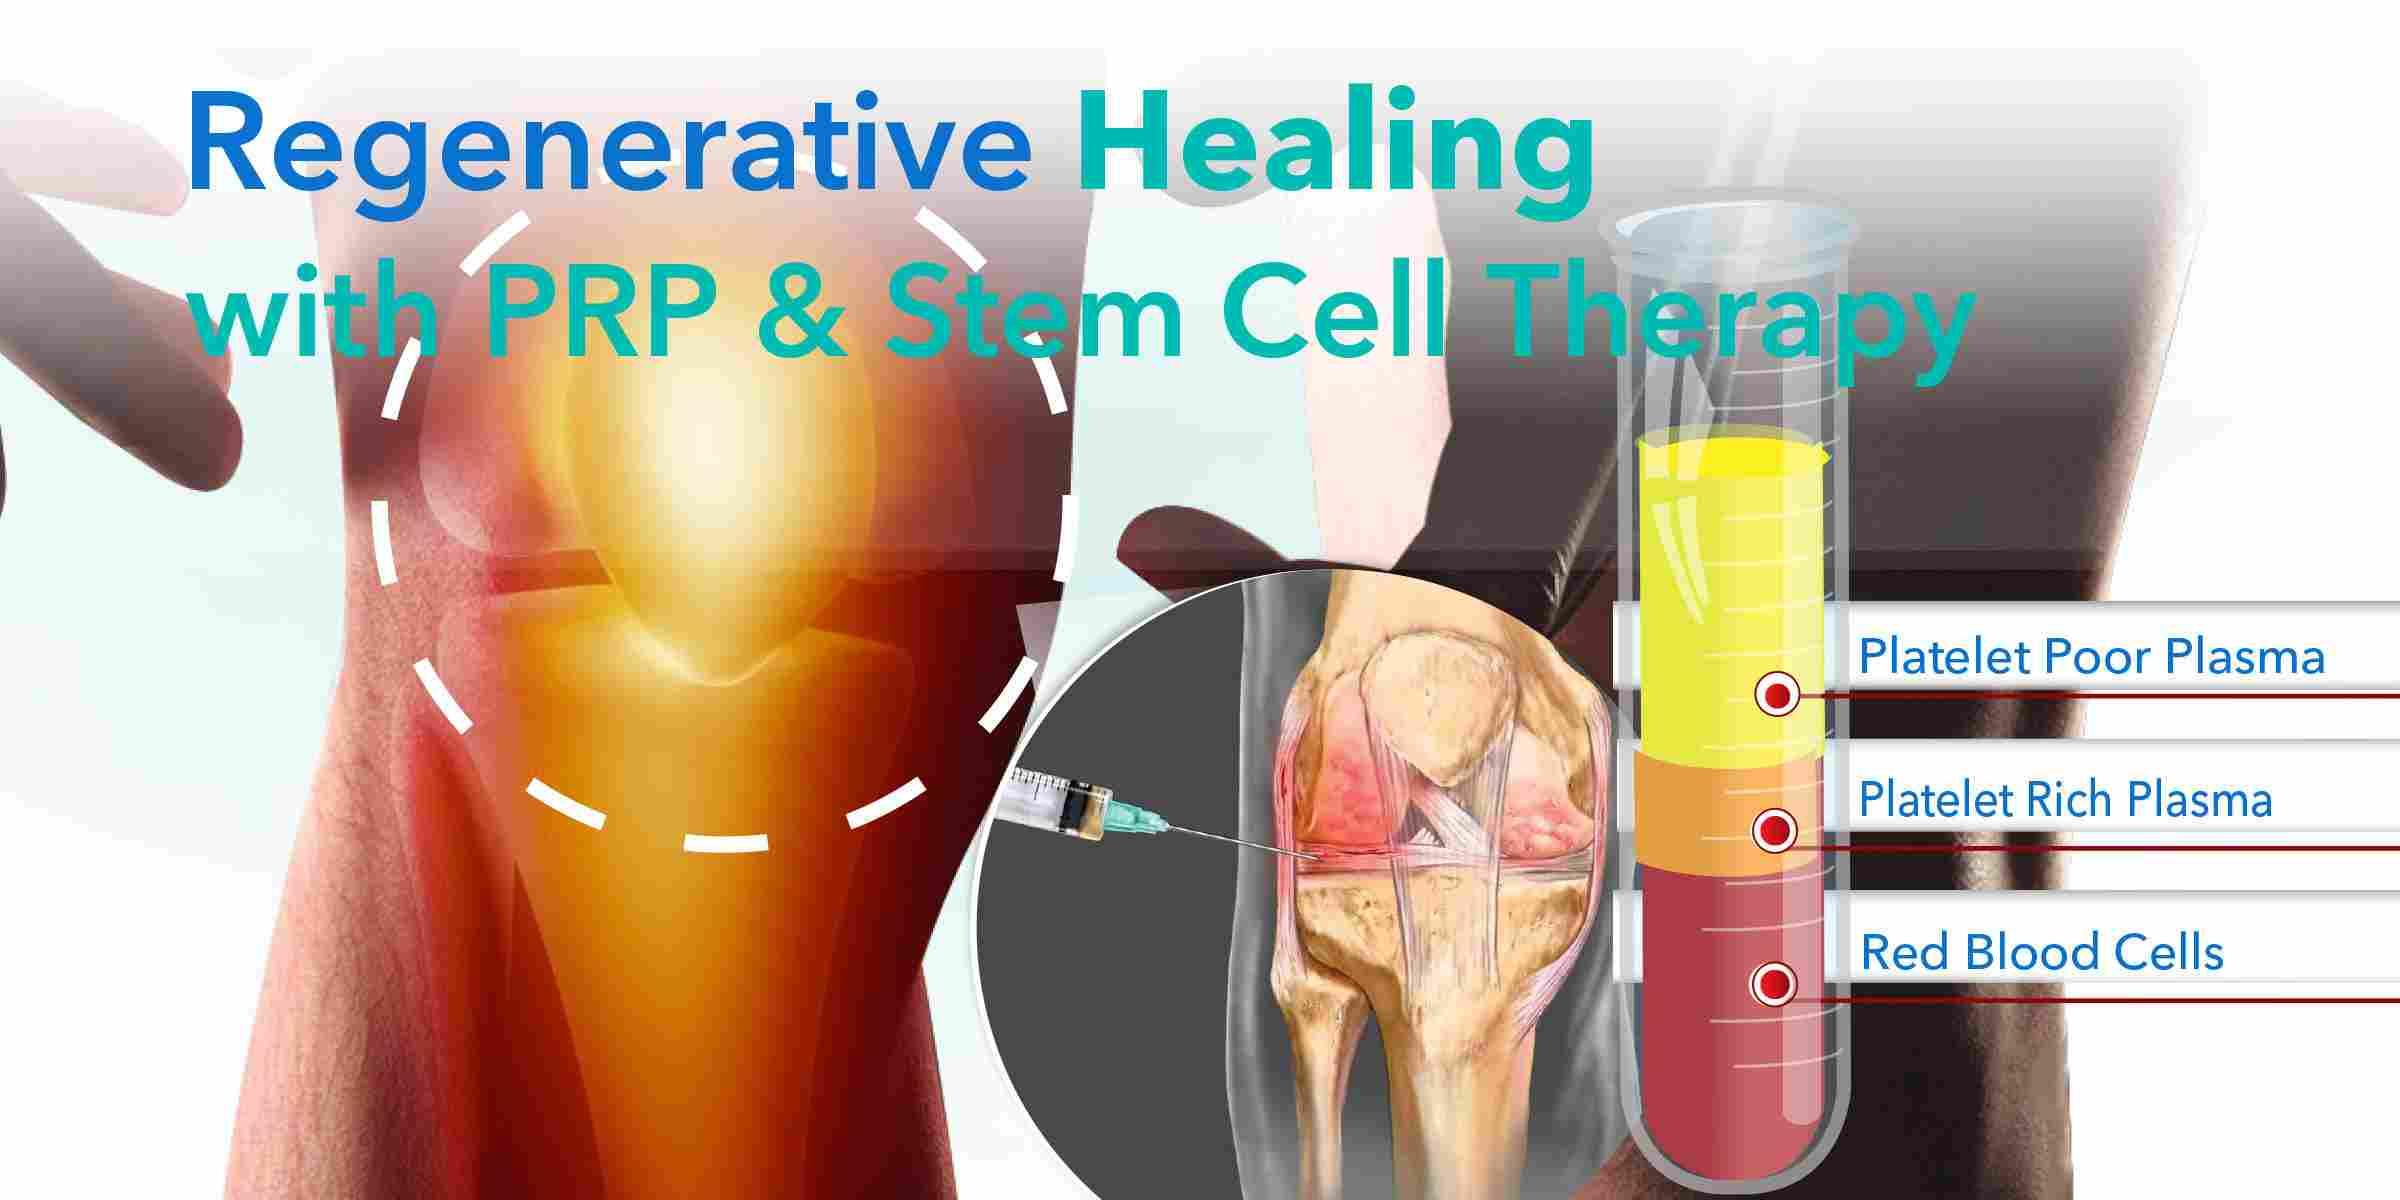 prp treatment kochi, thrissur, kerala, india